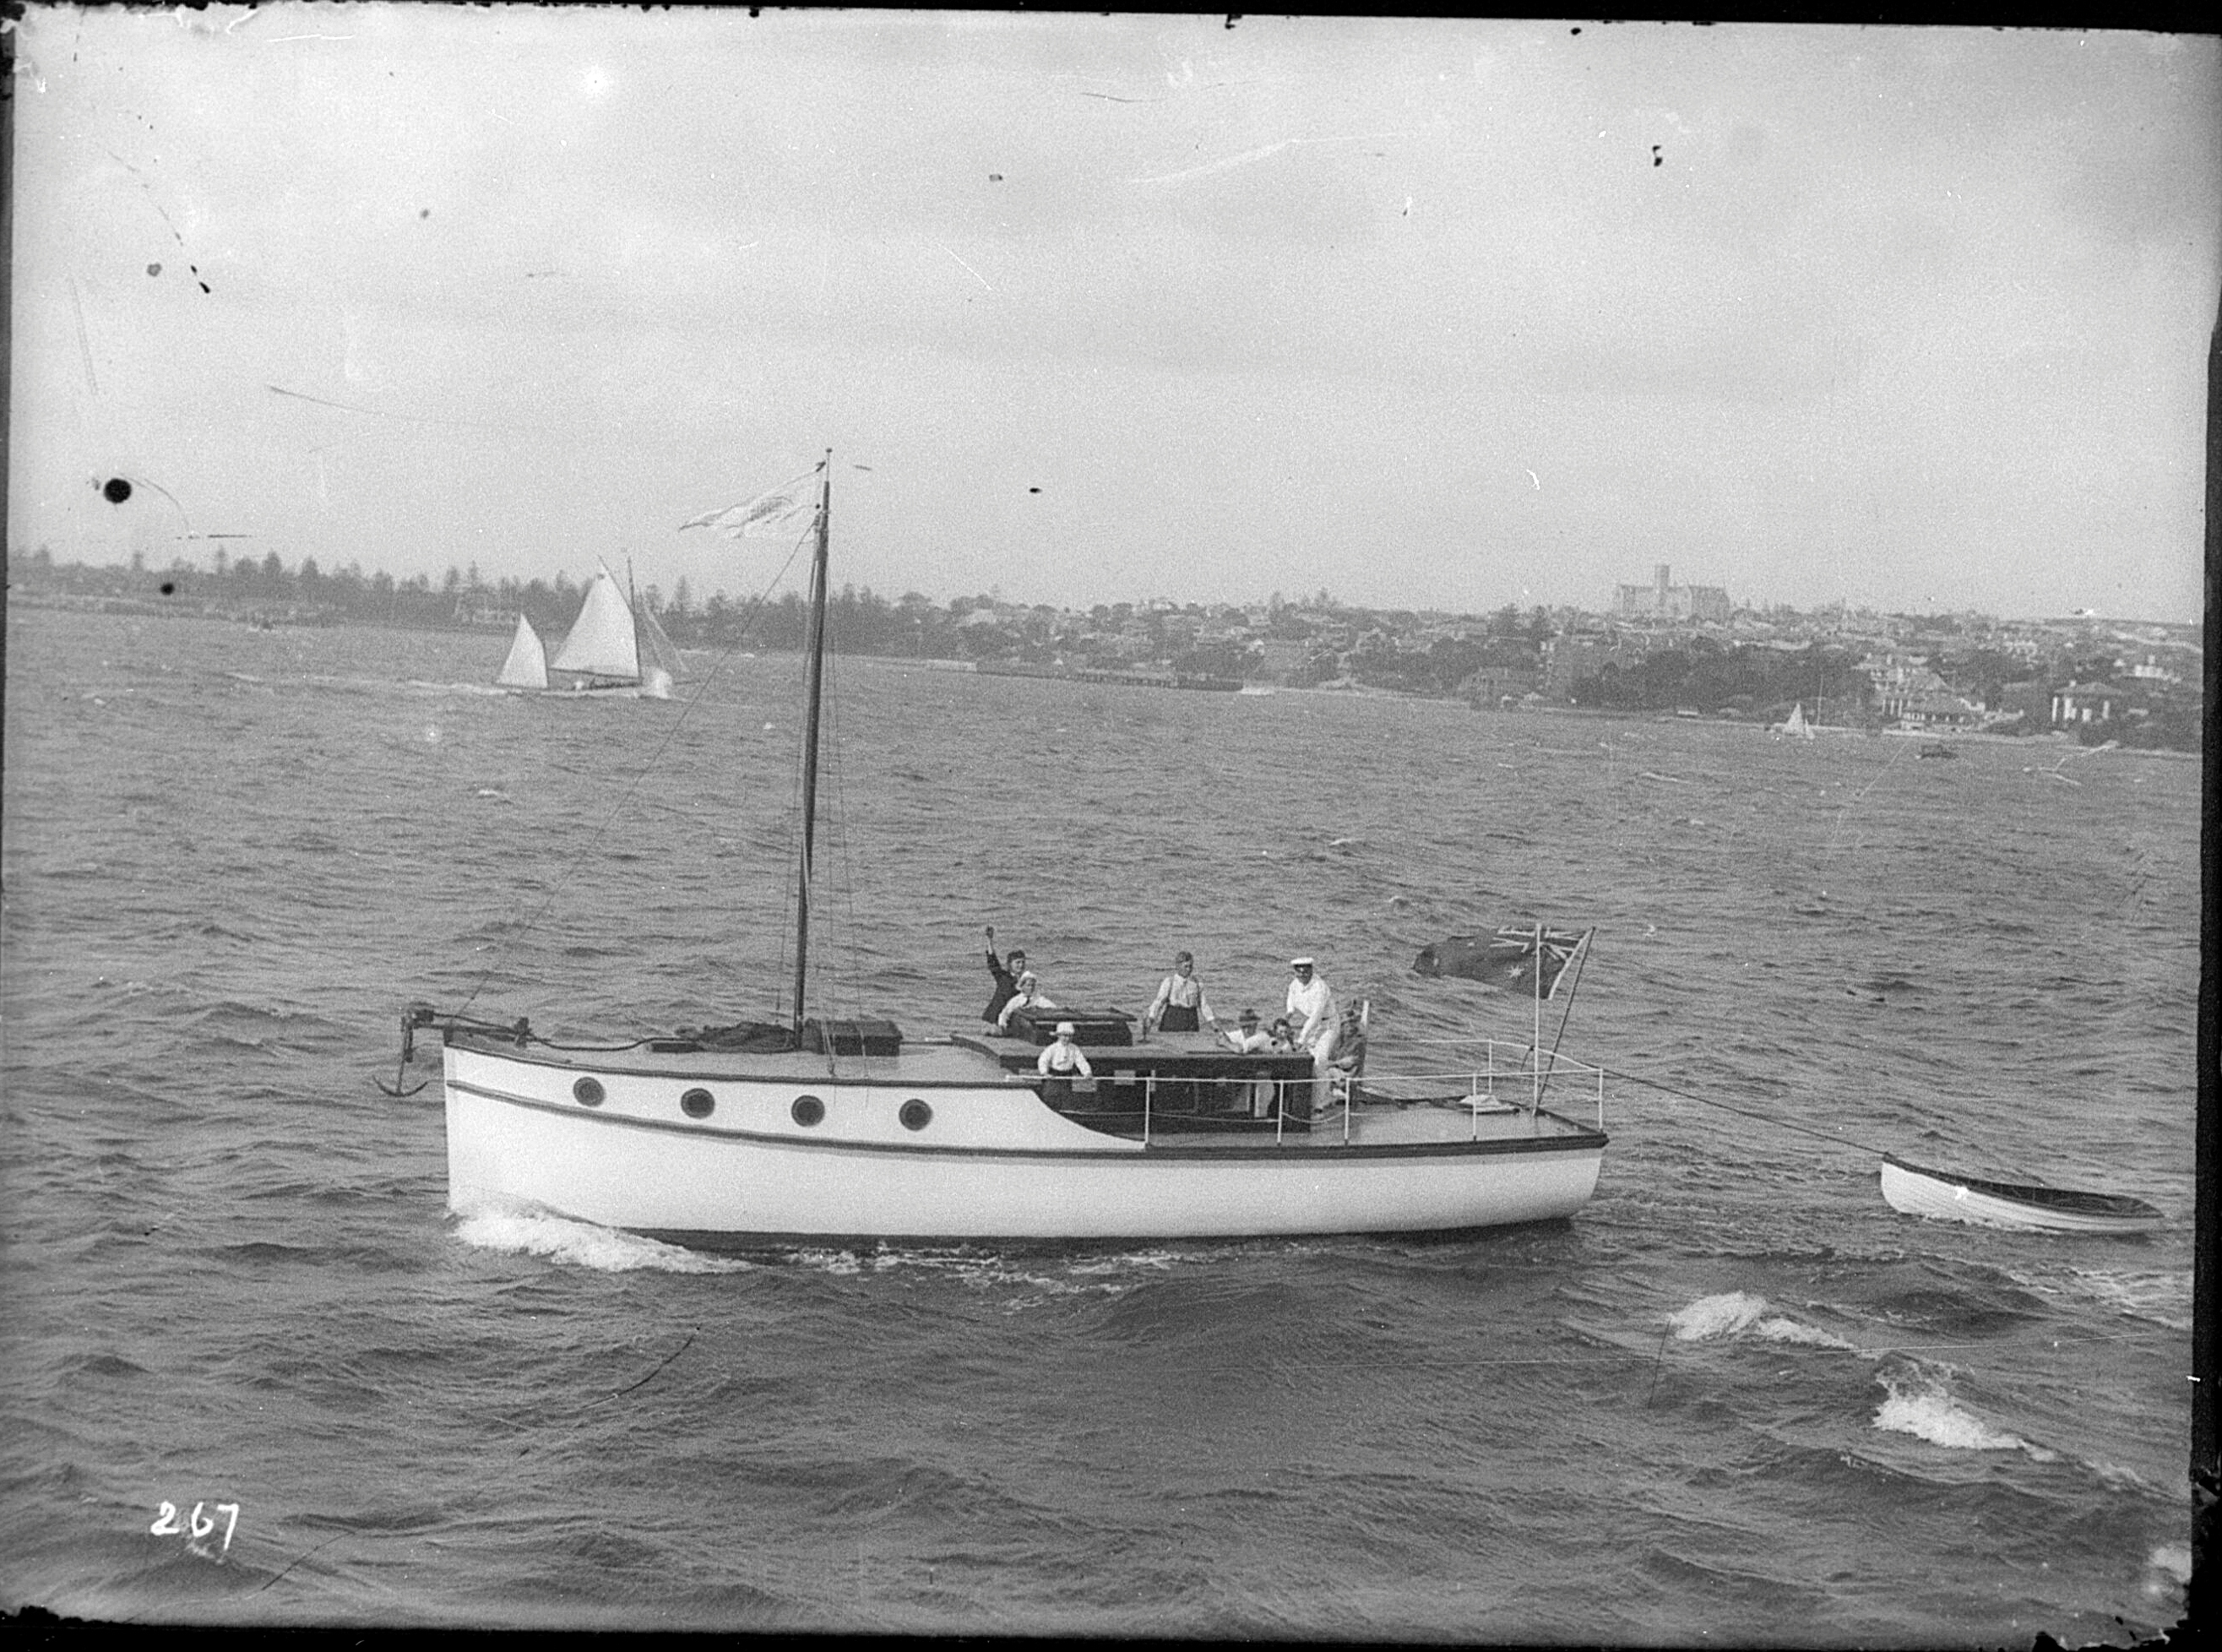 Raised deck motorlaunch near Manly, Sydney